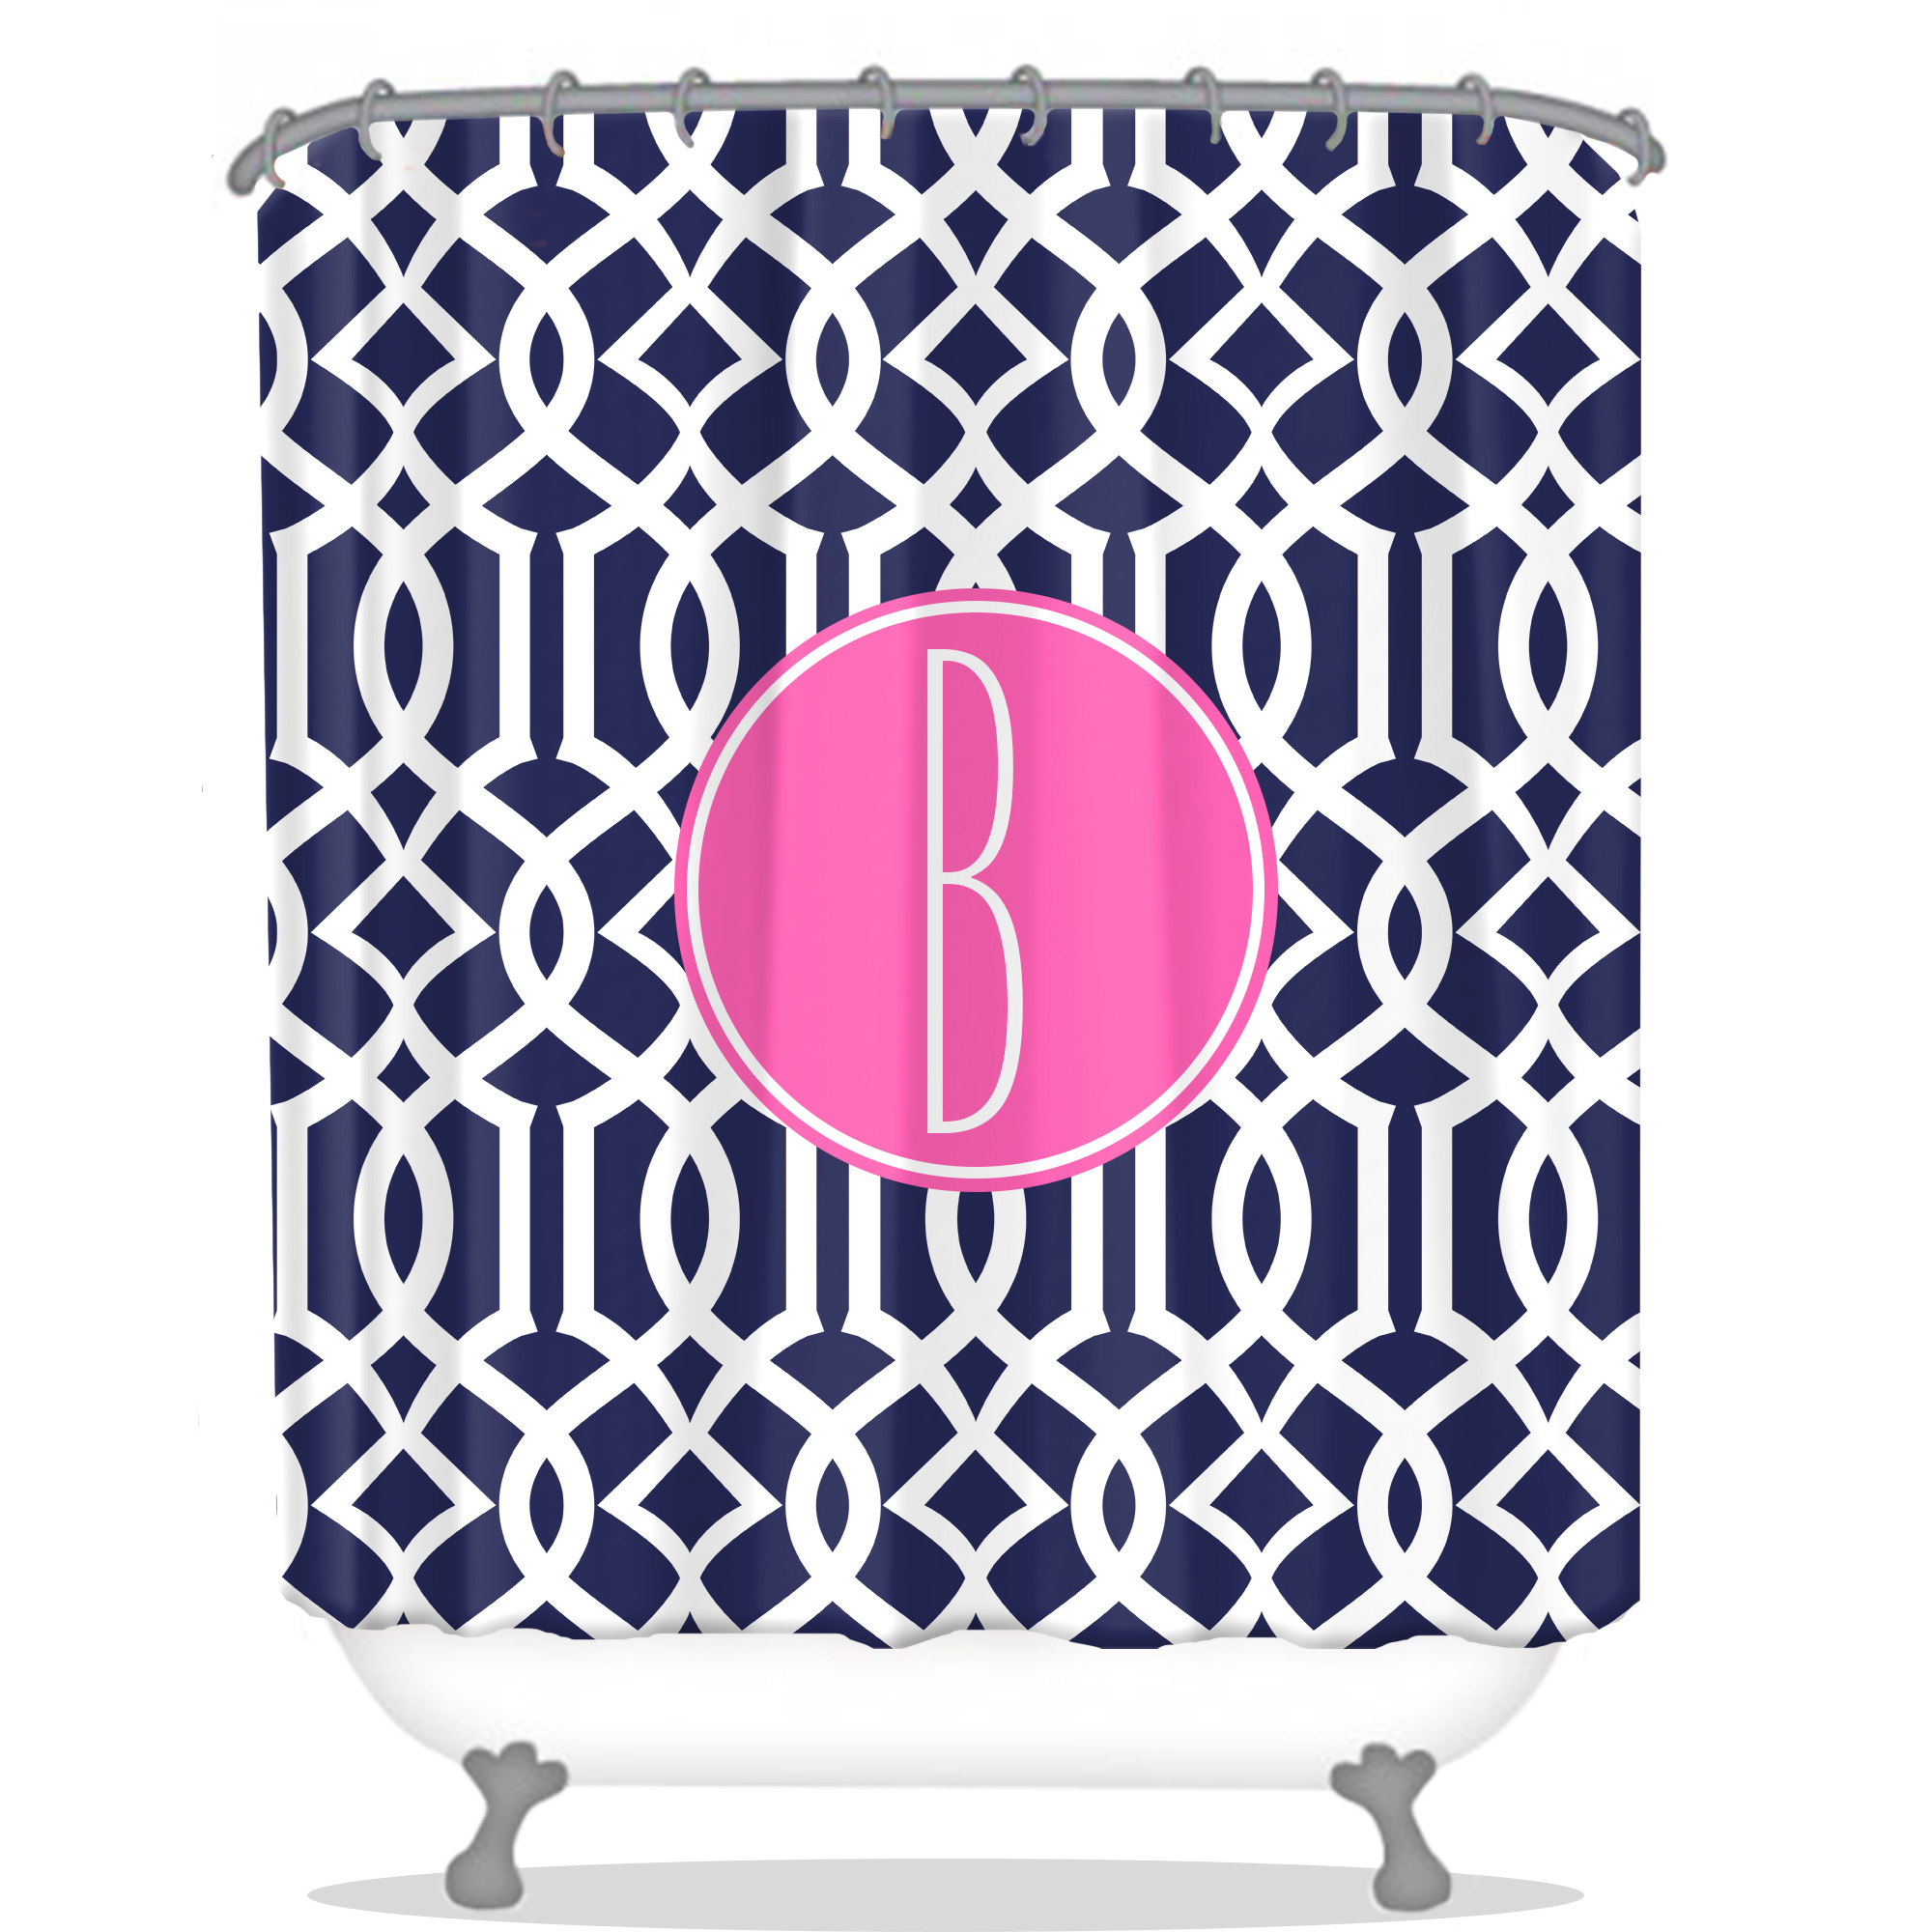 Lattice Print Personalized Shower Curtain Navy Shower Curtain Modern Personalized Shower